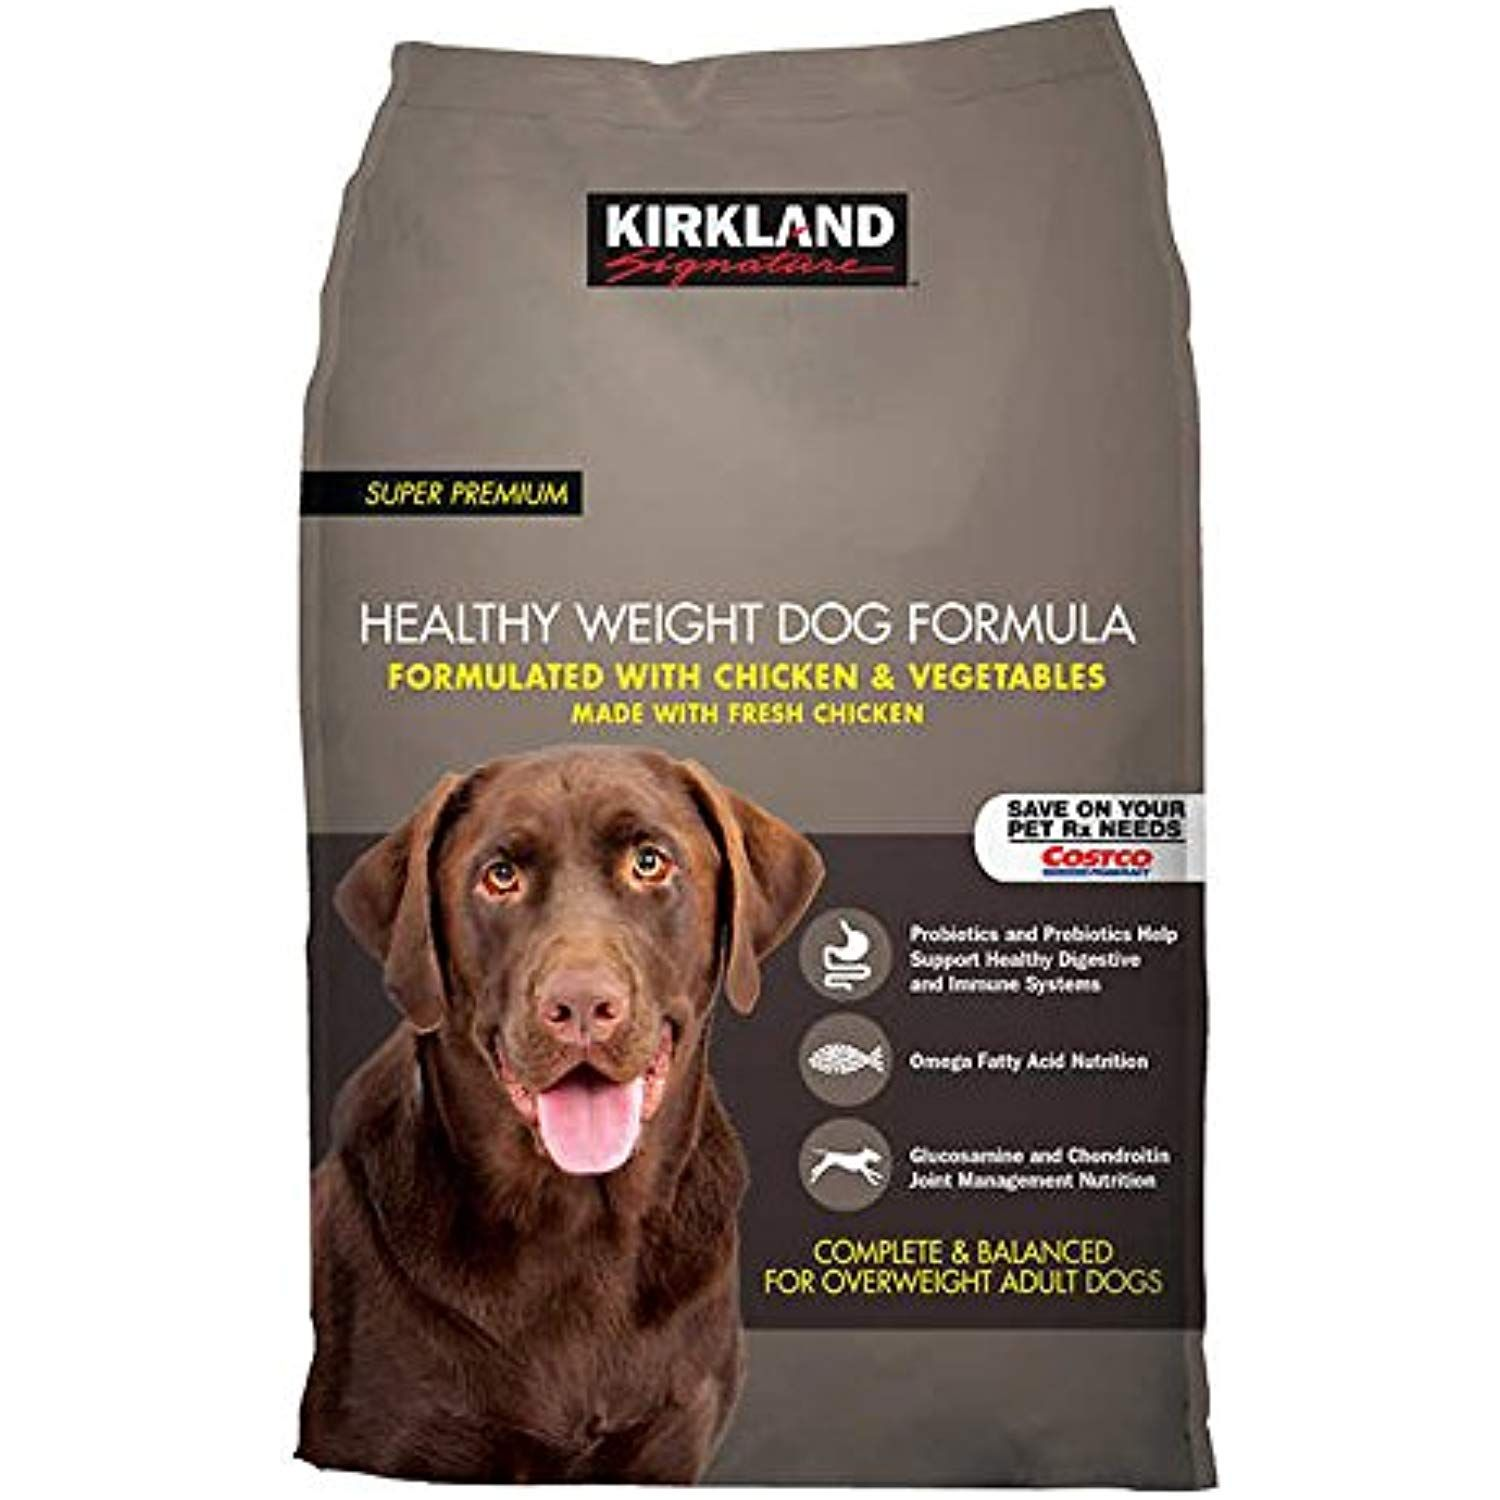 Kirkland Signature Dog Food Variety Formula Chicken Dogfood